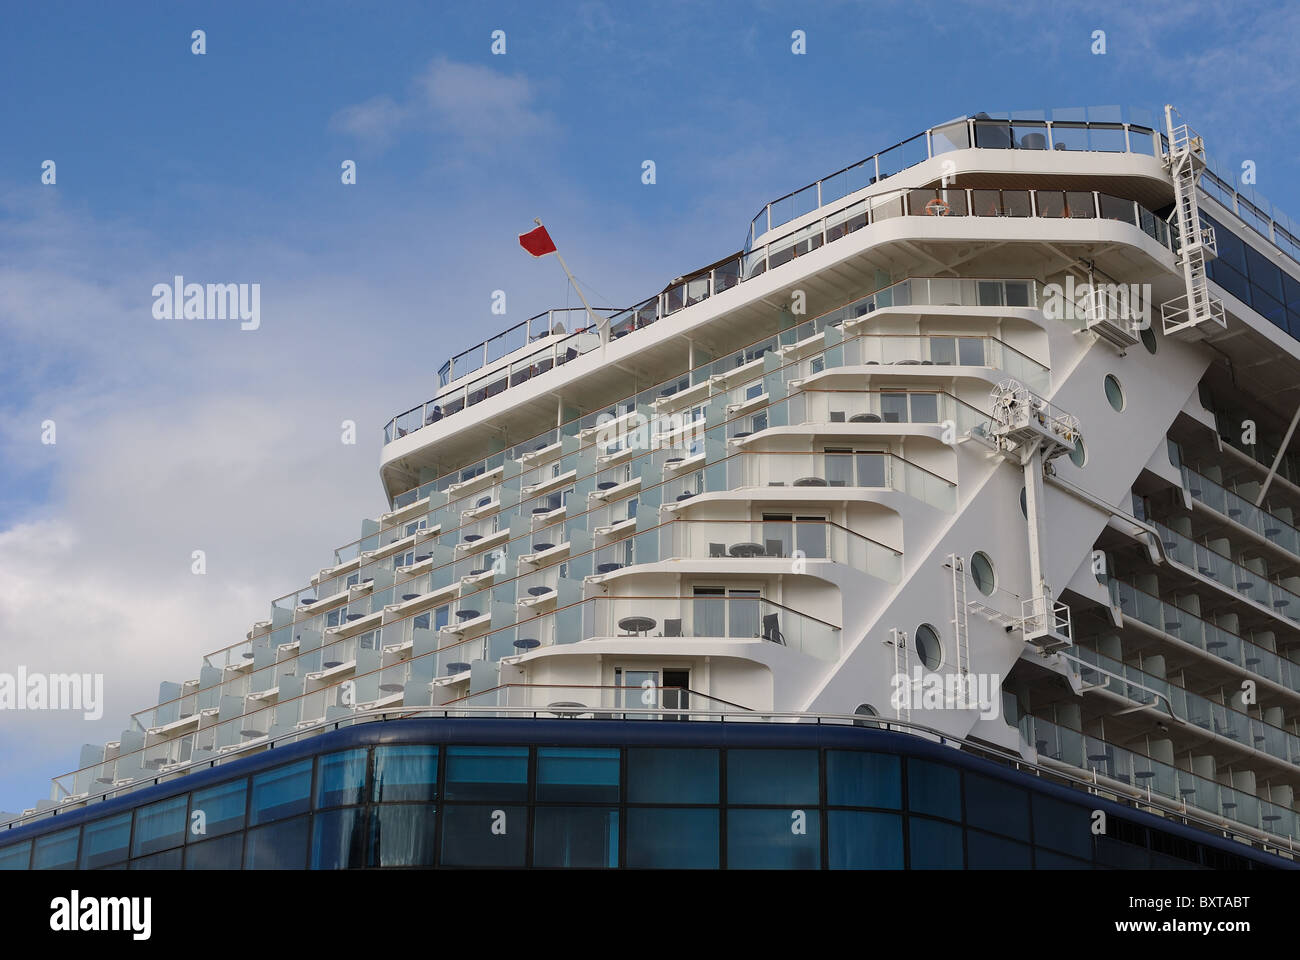 Aft Of A Cruise Ship With Balconies Of Luxury Staterooms Stock - What is aft on a cruise ship